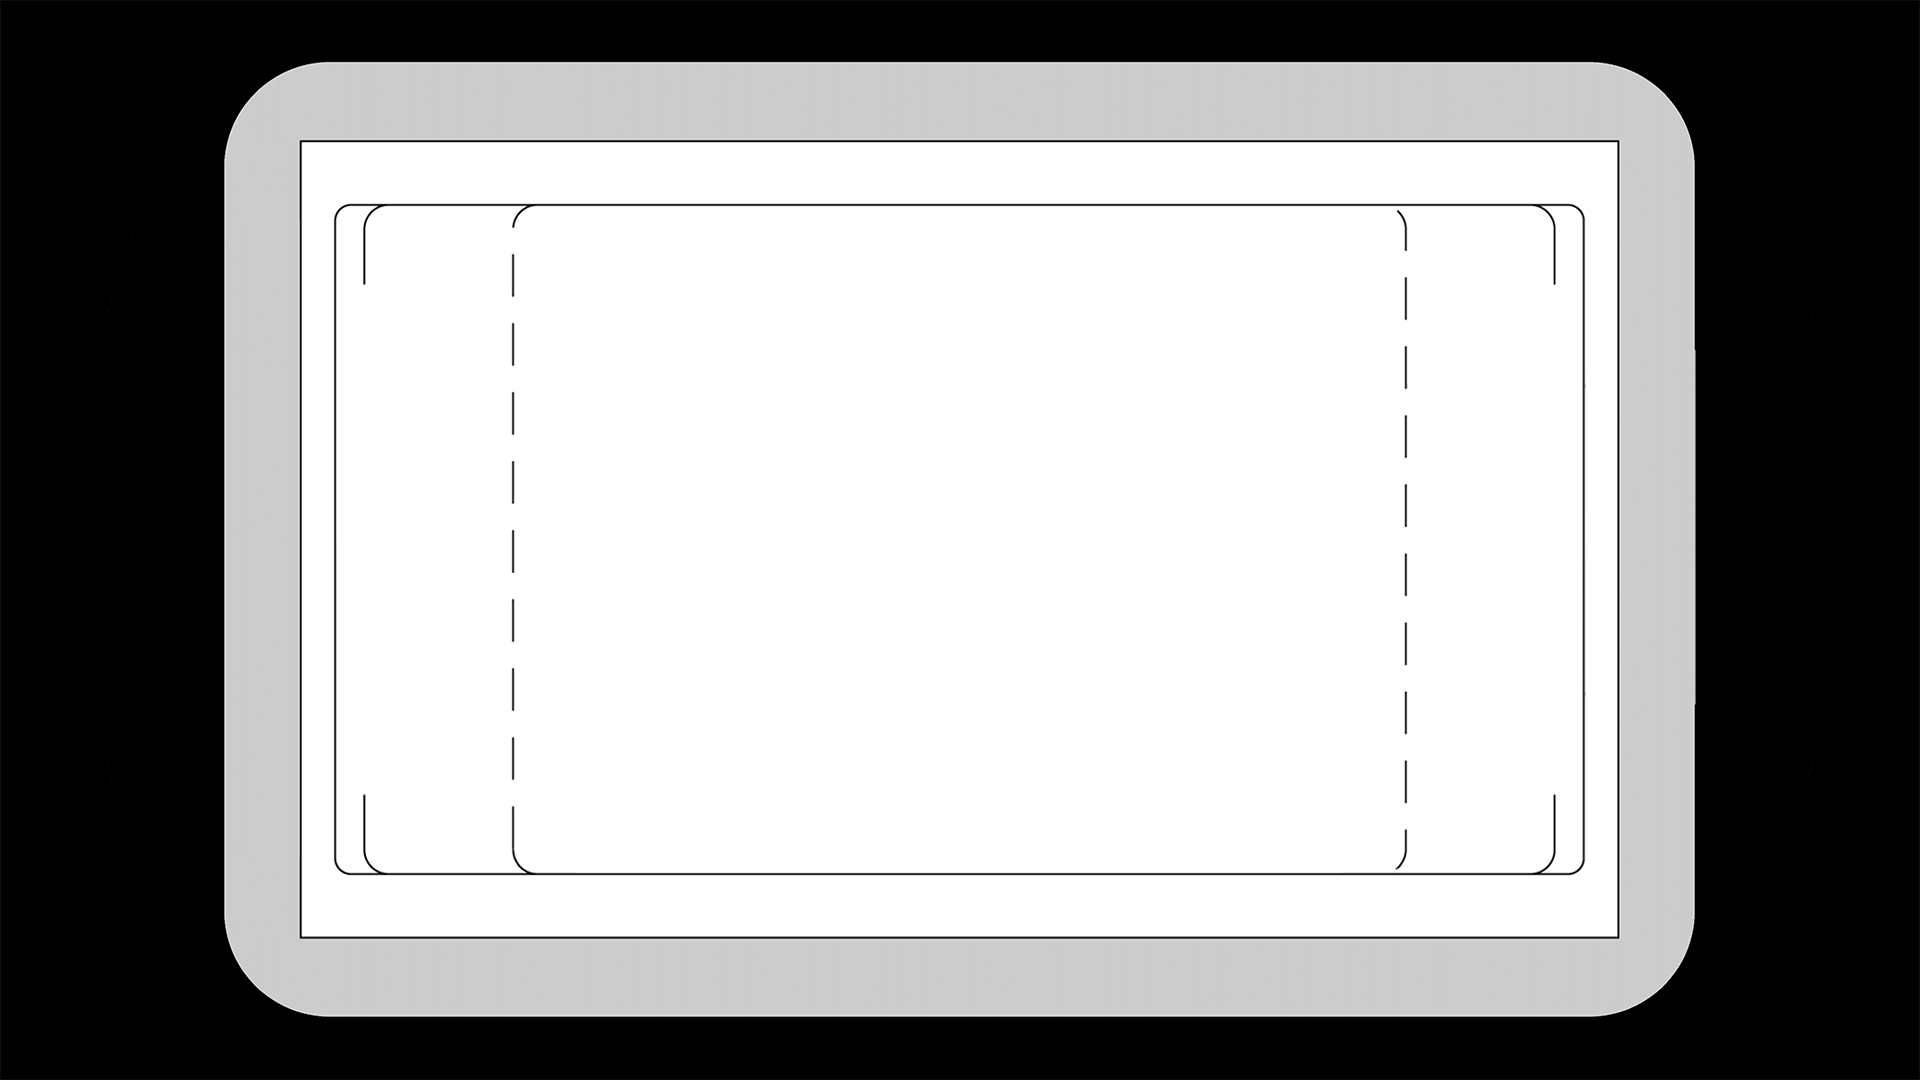 Viewfinder05a.png